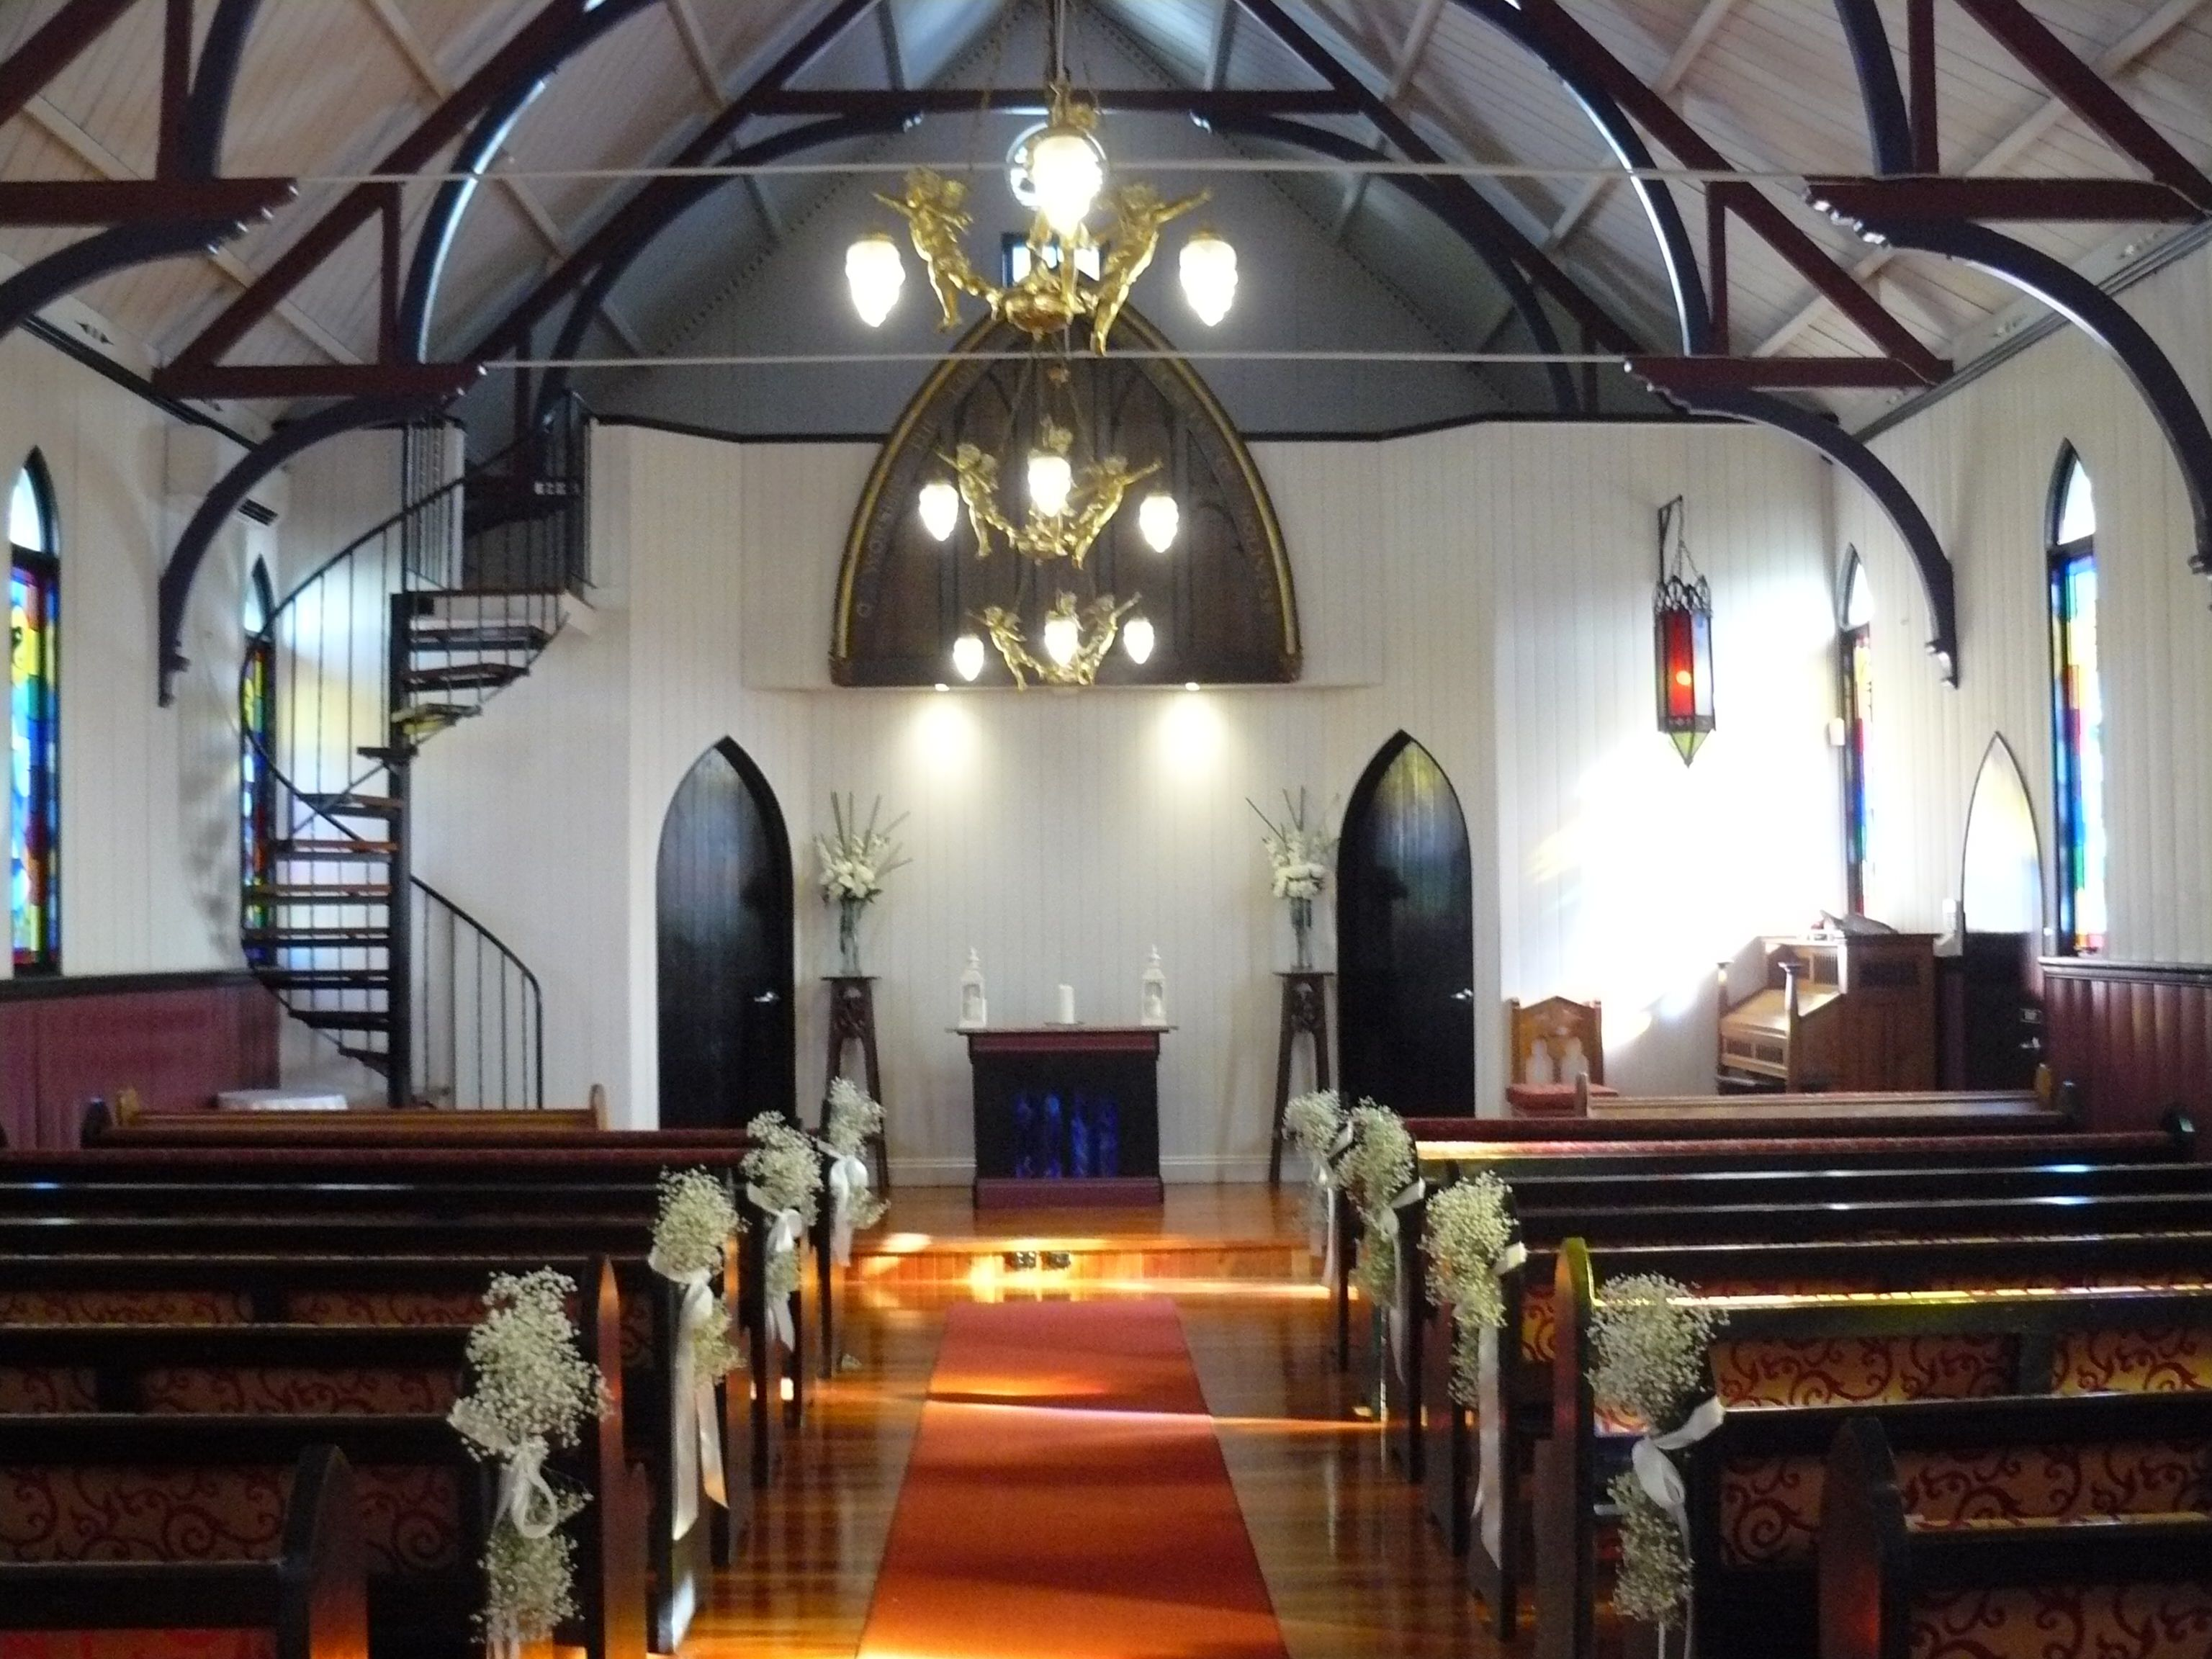 Broadway Chapel Weddings Brisbane Celebrant Neal Foster The Marriage Performs Here